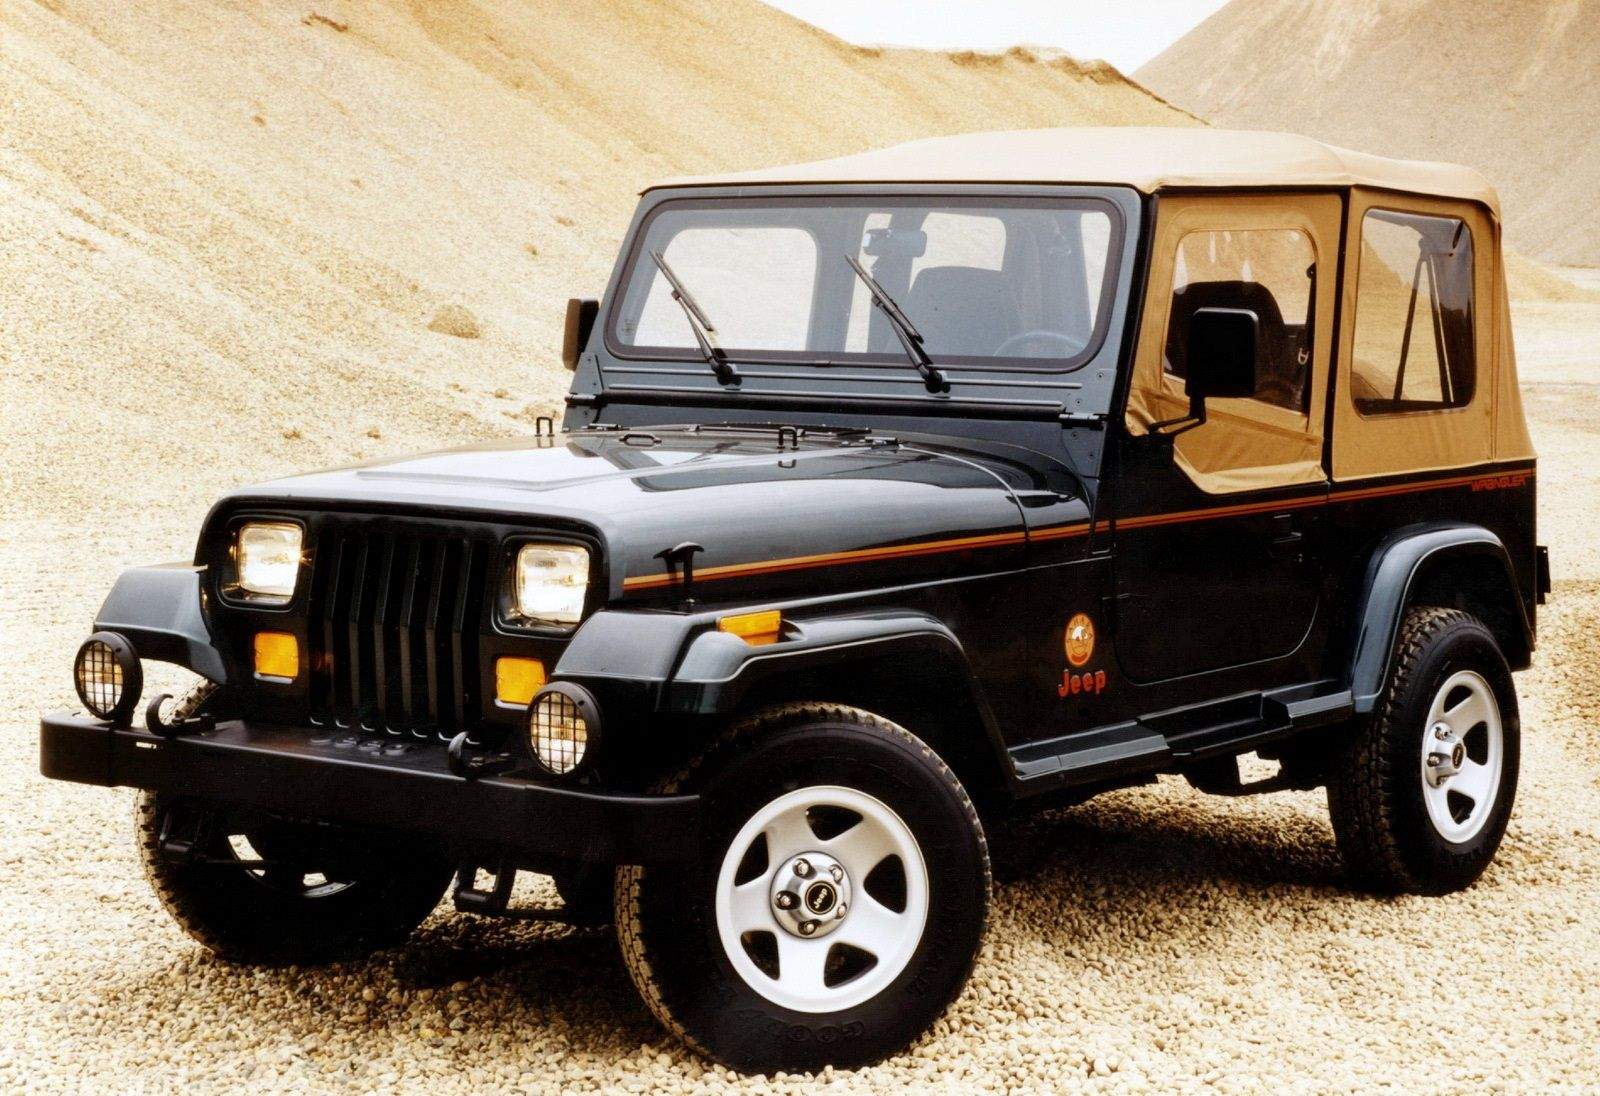 1991 to 1995 jeep wrangler yj suvs for  1991 and 1995